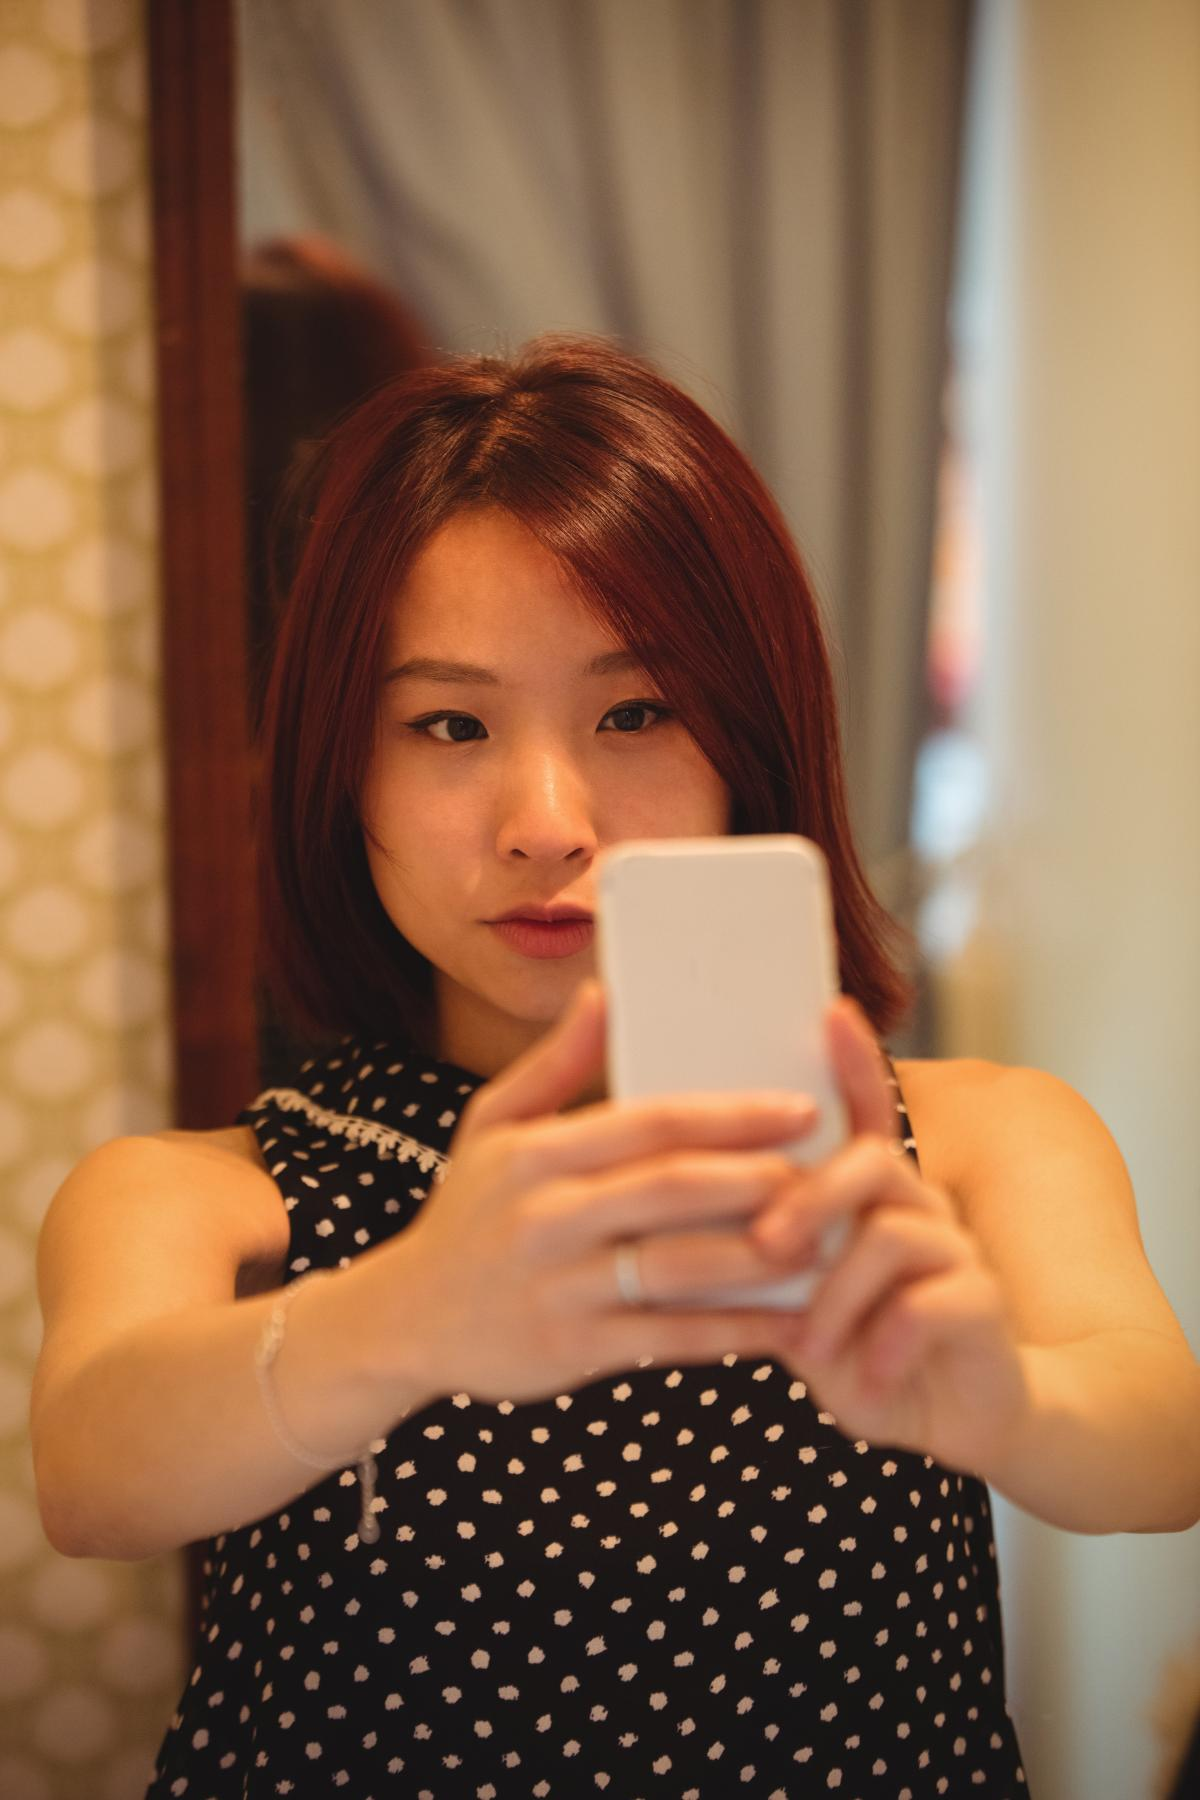 Woman taking selfie from mobile phone #409503